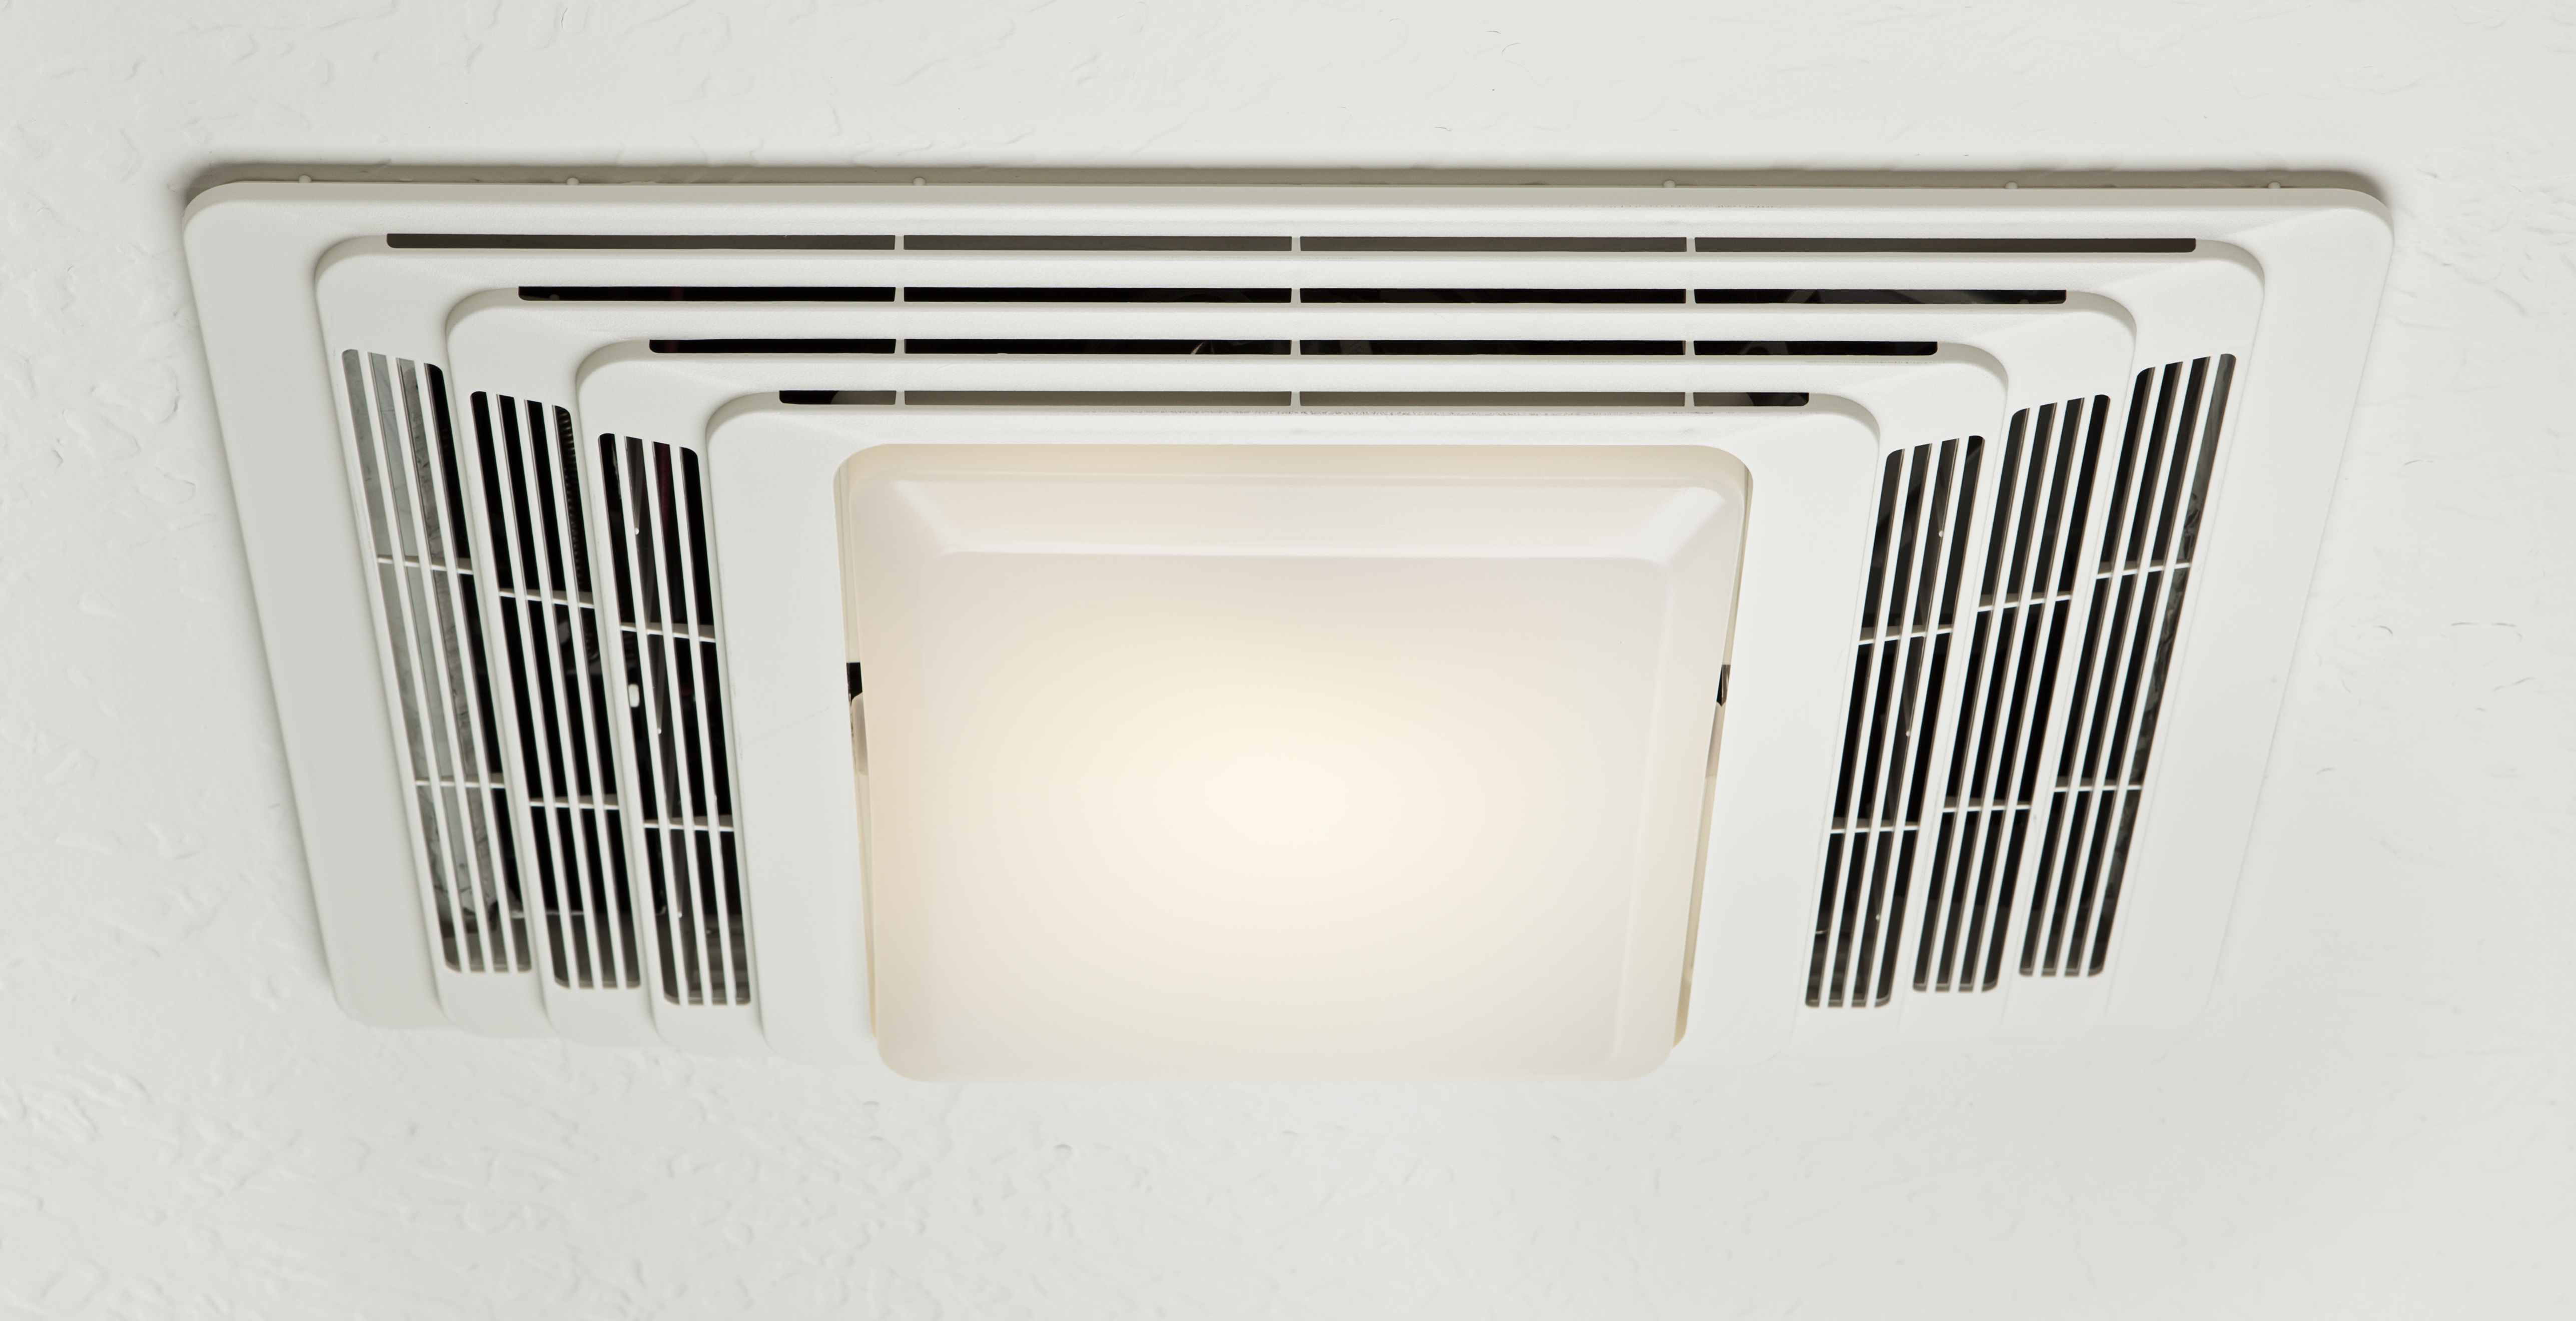 How To Replace A Bathroom Exhaust Fan Light Bulb Hunker